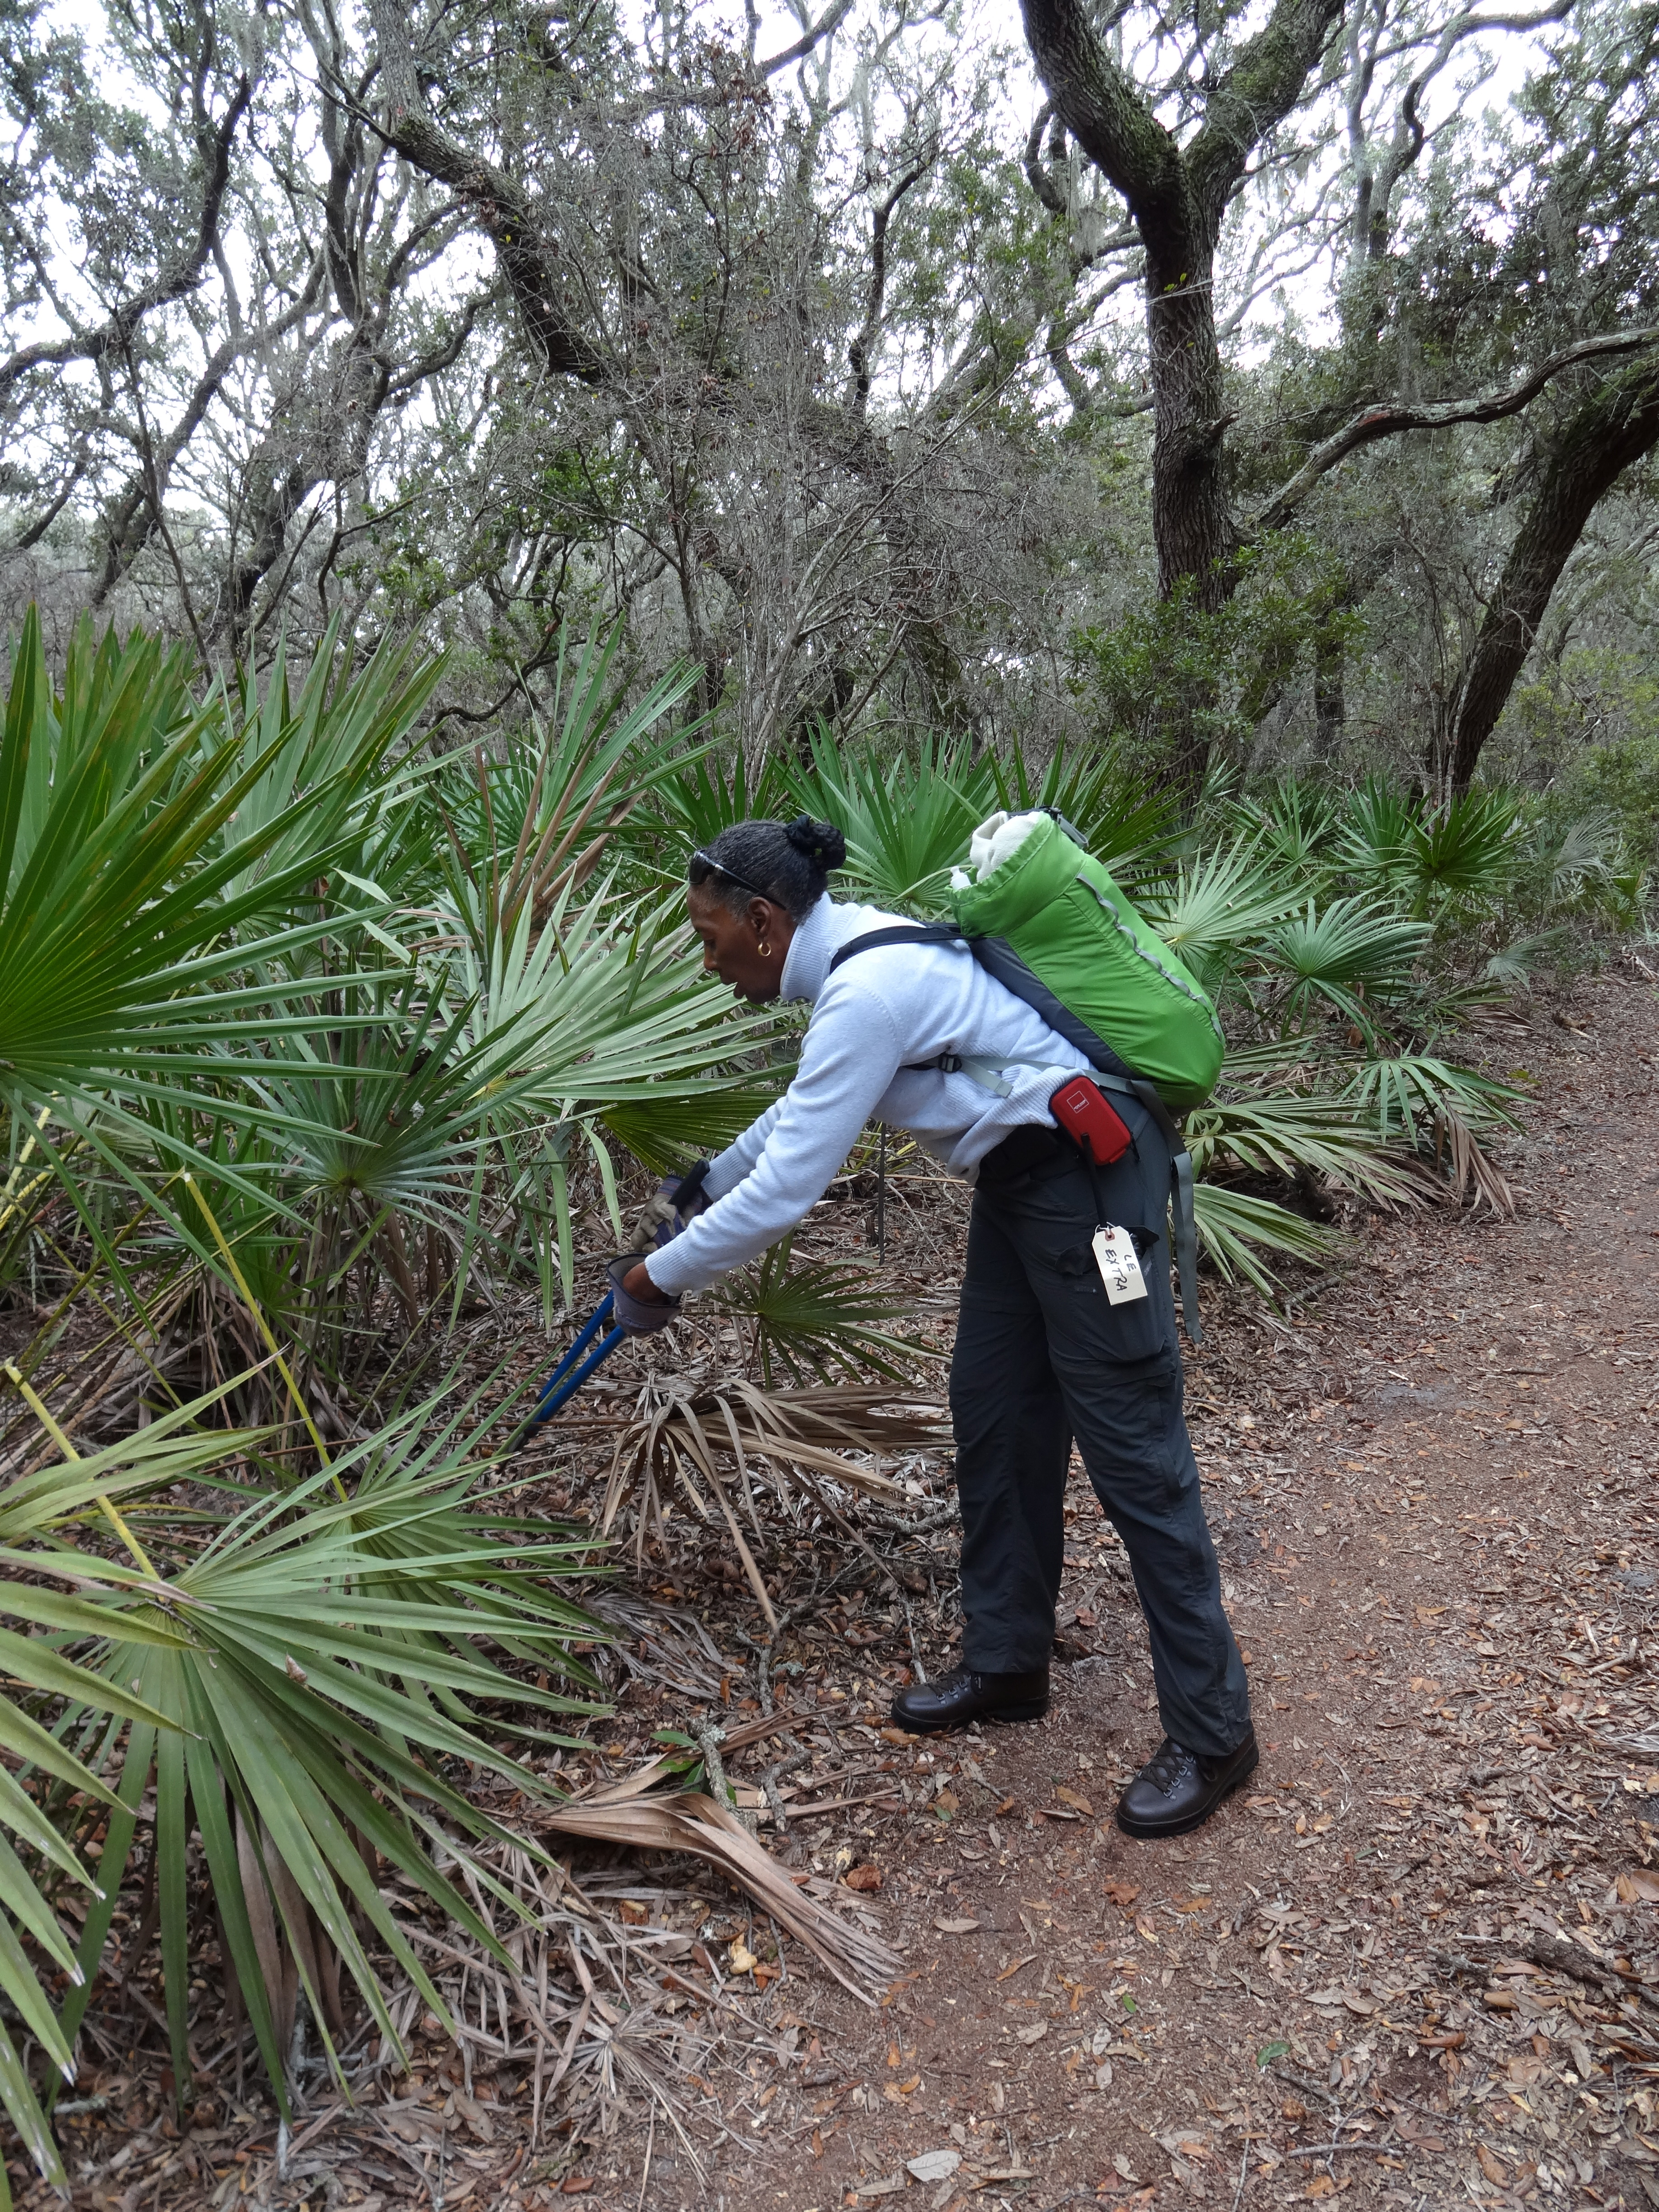 Trail Maintenance Service Work